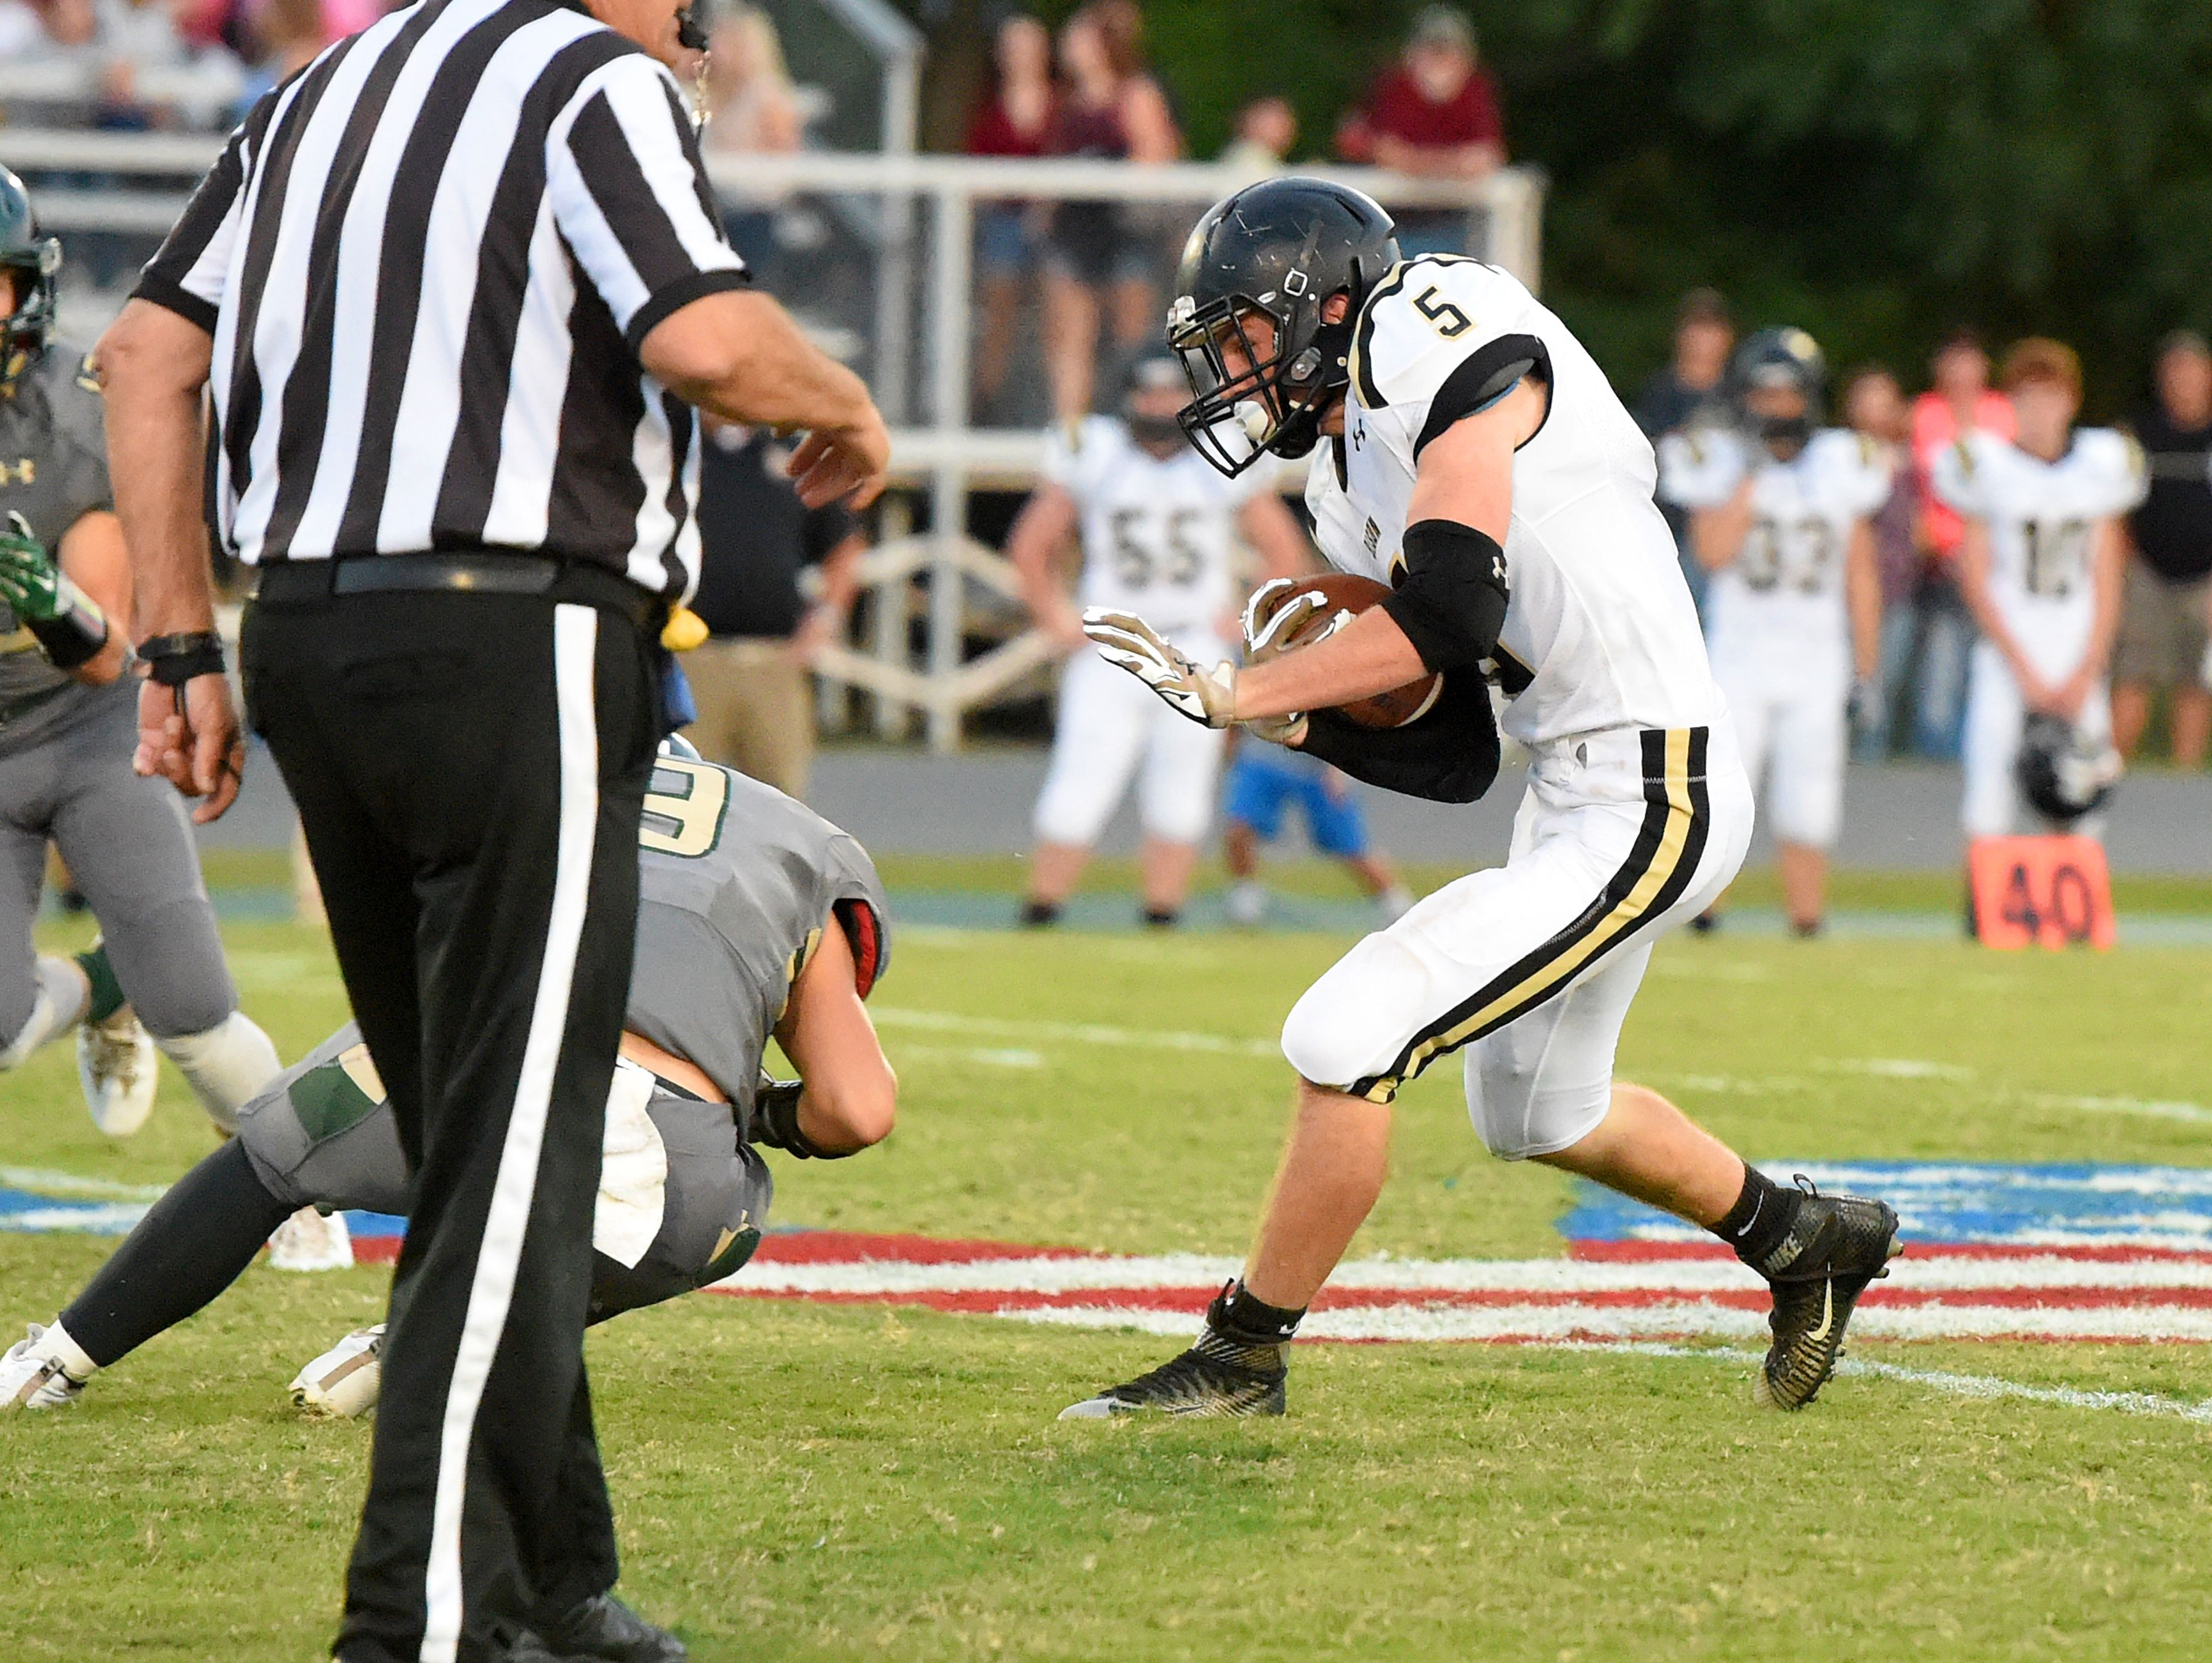 Buffalo Gap's Jacob Thompson cradles the football as he runs it for more yards during a football game played in Fishersville on Friday, Sept. 23, 2016.